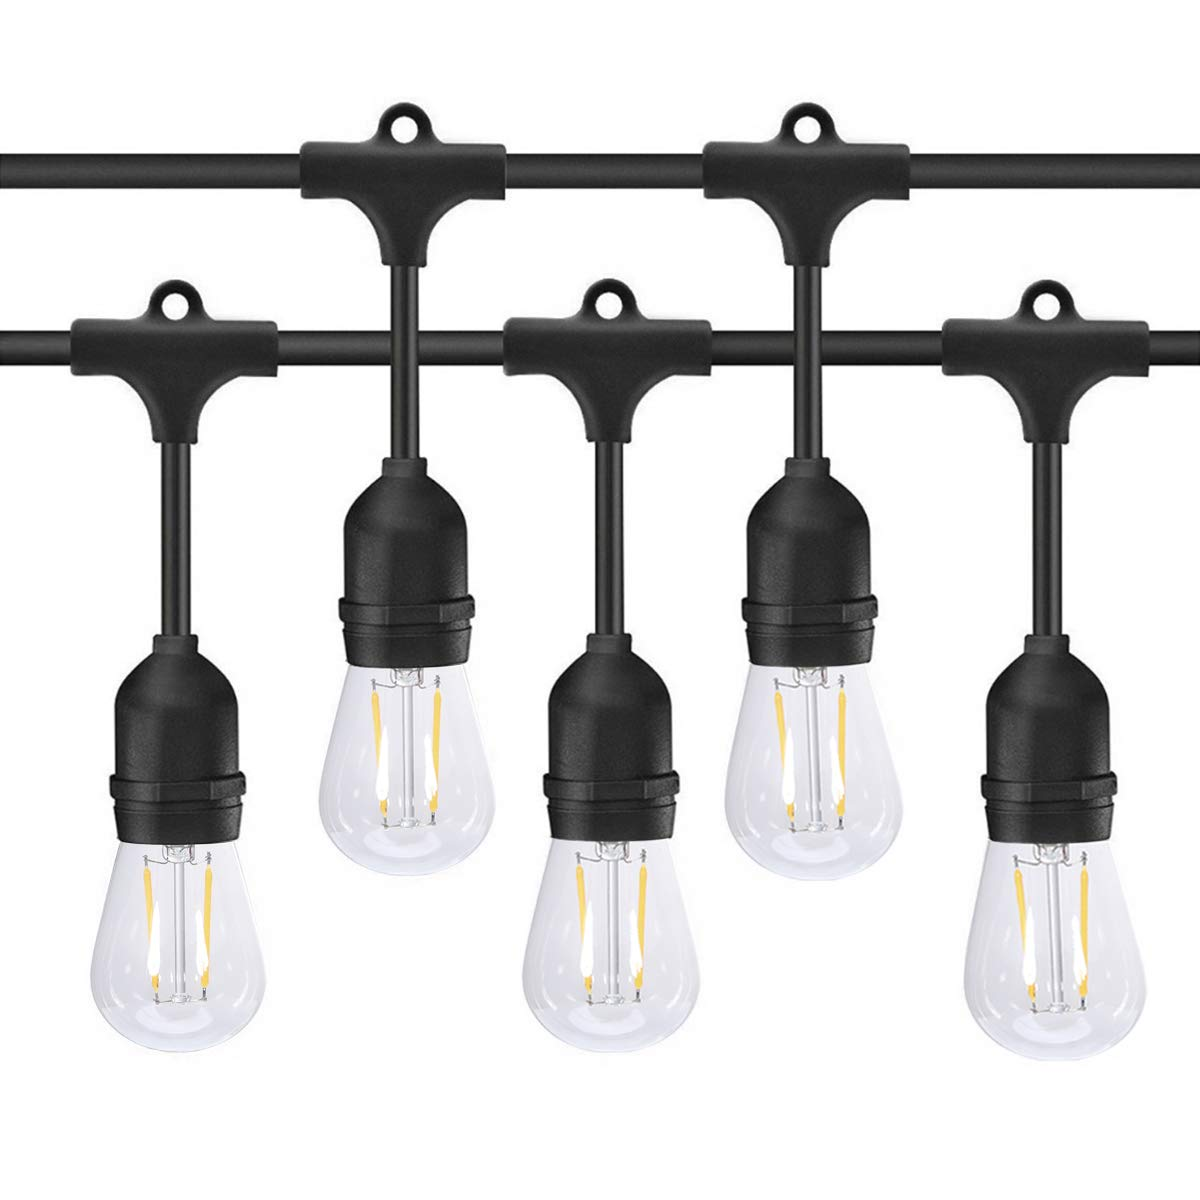 Ecowho Outdoor String Lights Led String Lights Indoor Waterproof Led Patio String Lights With 9 Hanging E26 Sockets Ul Listed For Yard Bistro Pergola